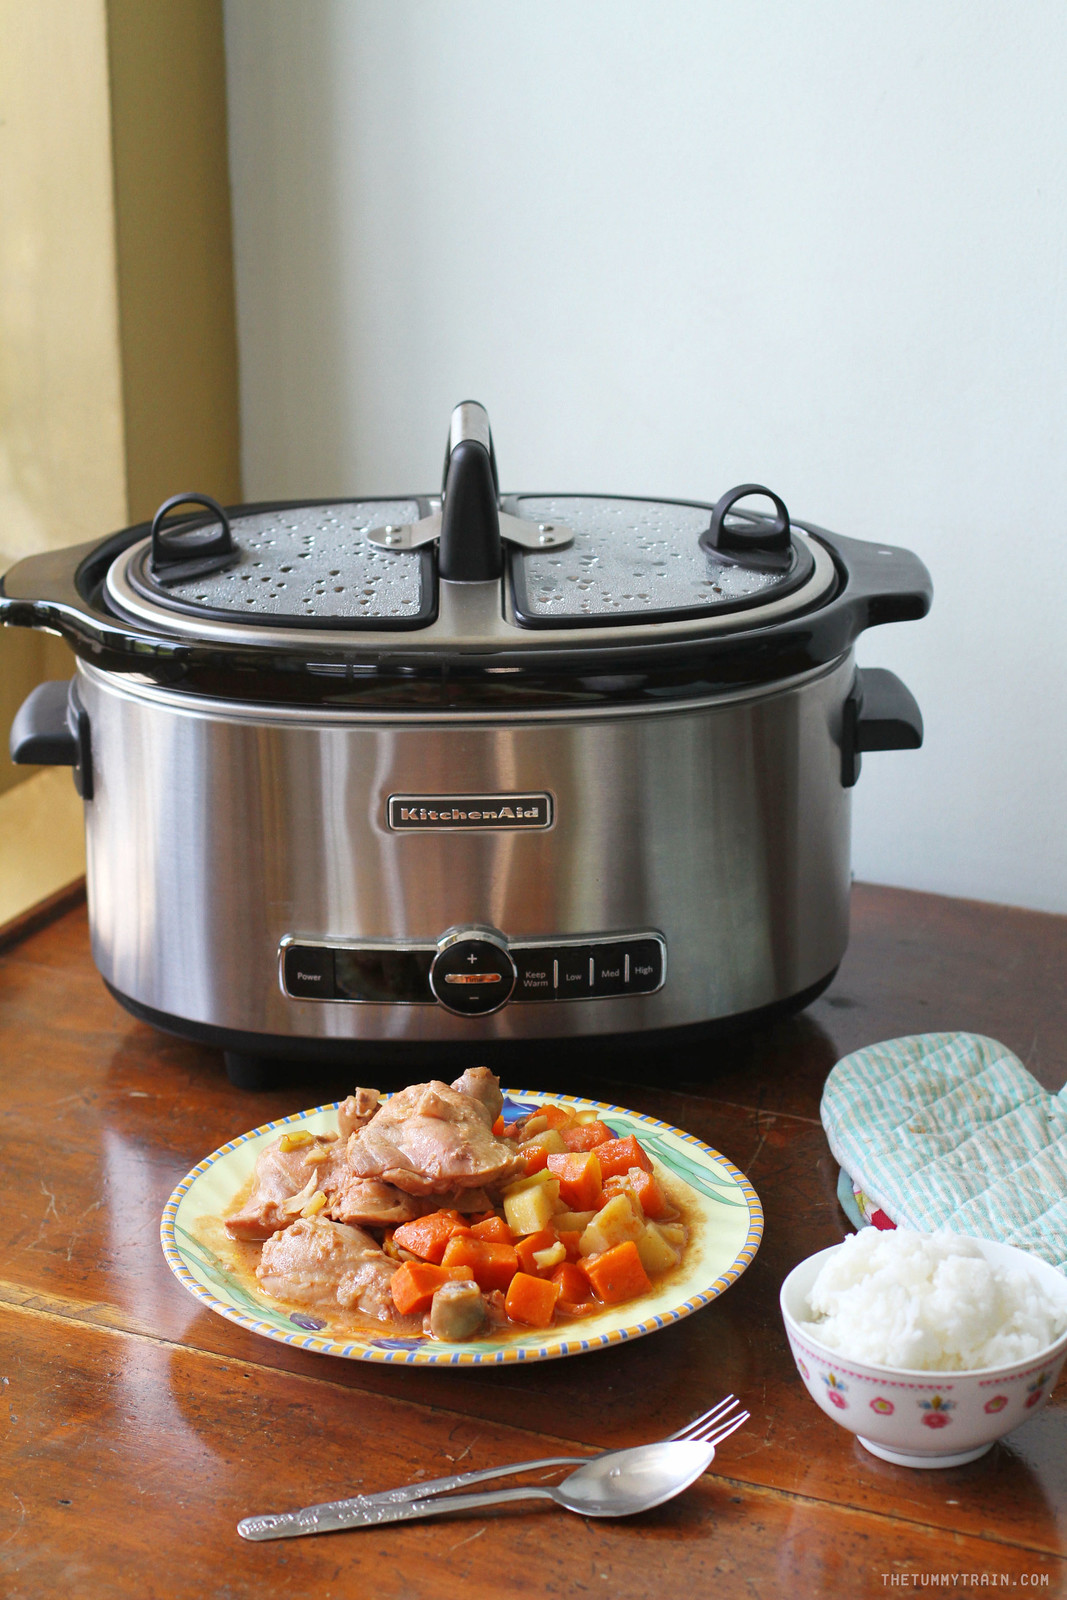 26714188216 455c6696ad h - A delightful Slow Cooker Spicy Chicken Stew Recipe with KitchenAid